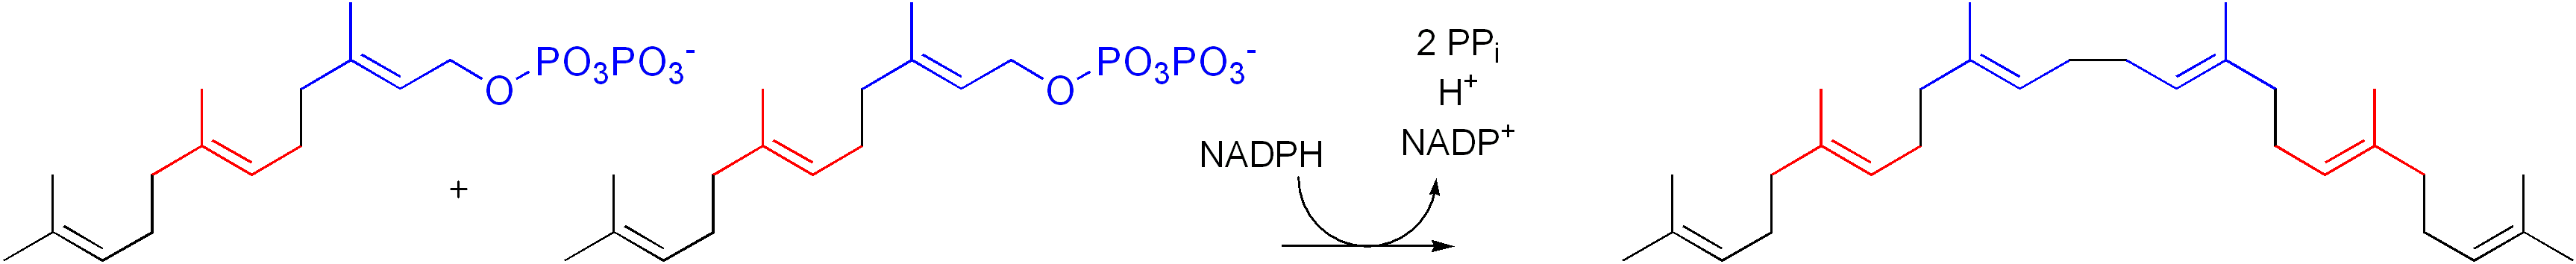 Resim:Cholesterol-Synthesis-Reaction10.png